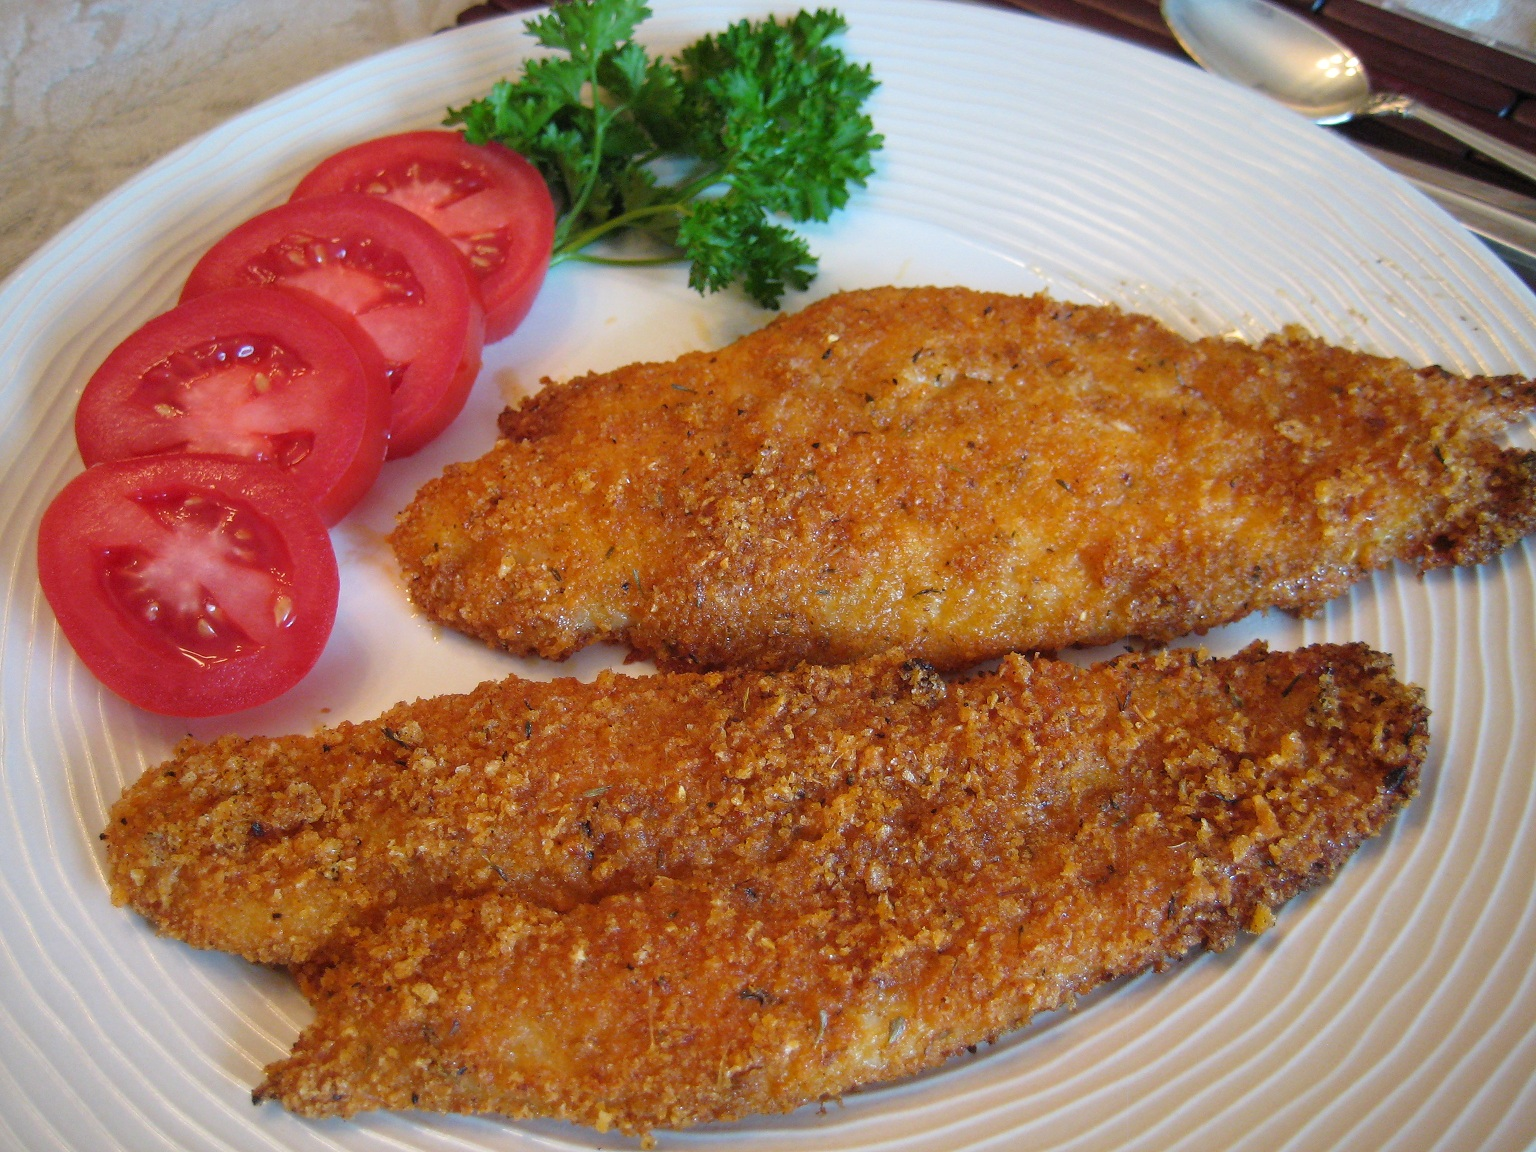 Fried fish recipe dishmaps for Pan fried fish fillet recipes